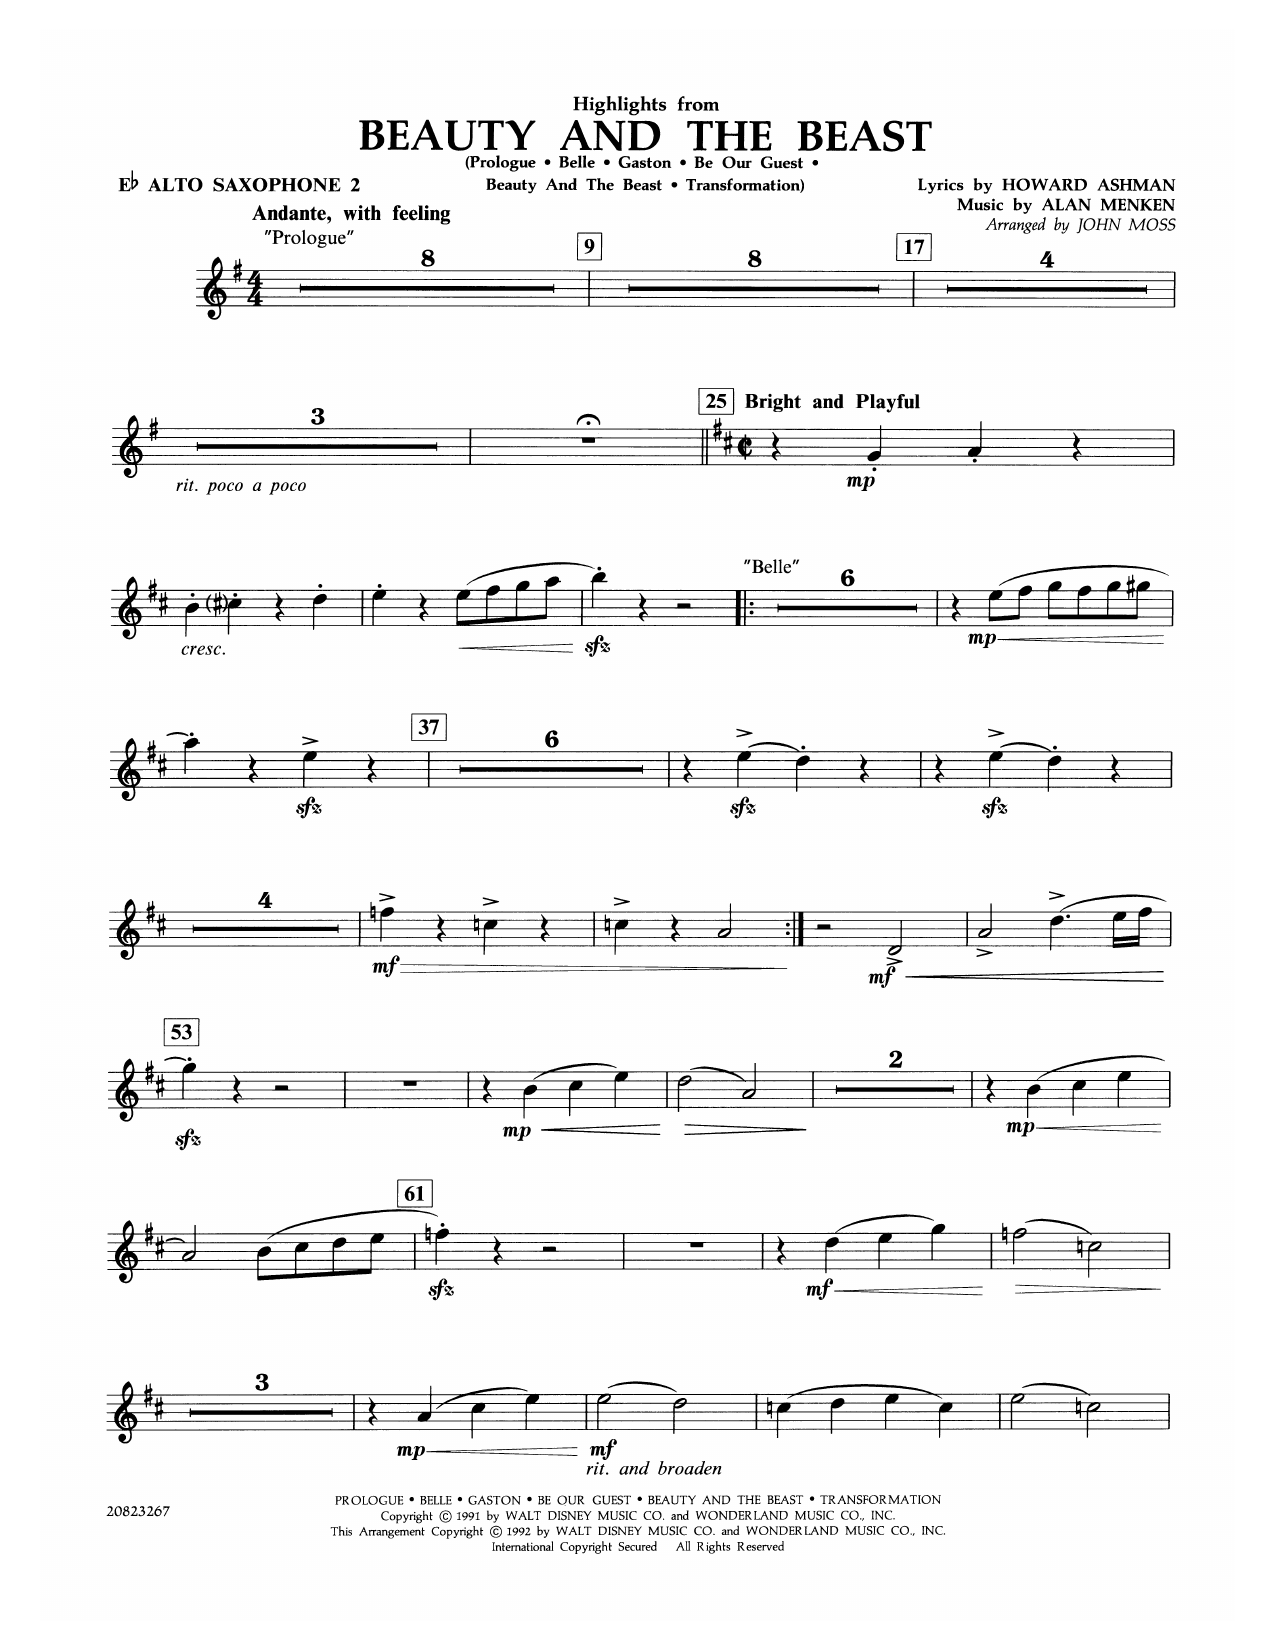 John Moss Highlights from Beauty and the Beast - Eb Alto Saxophone 2 sheet music notes and chords. Download Printable PDF.